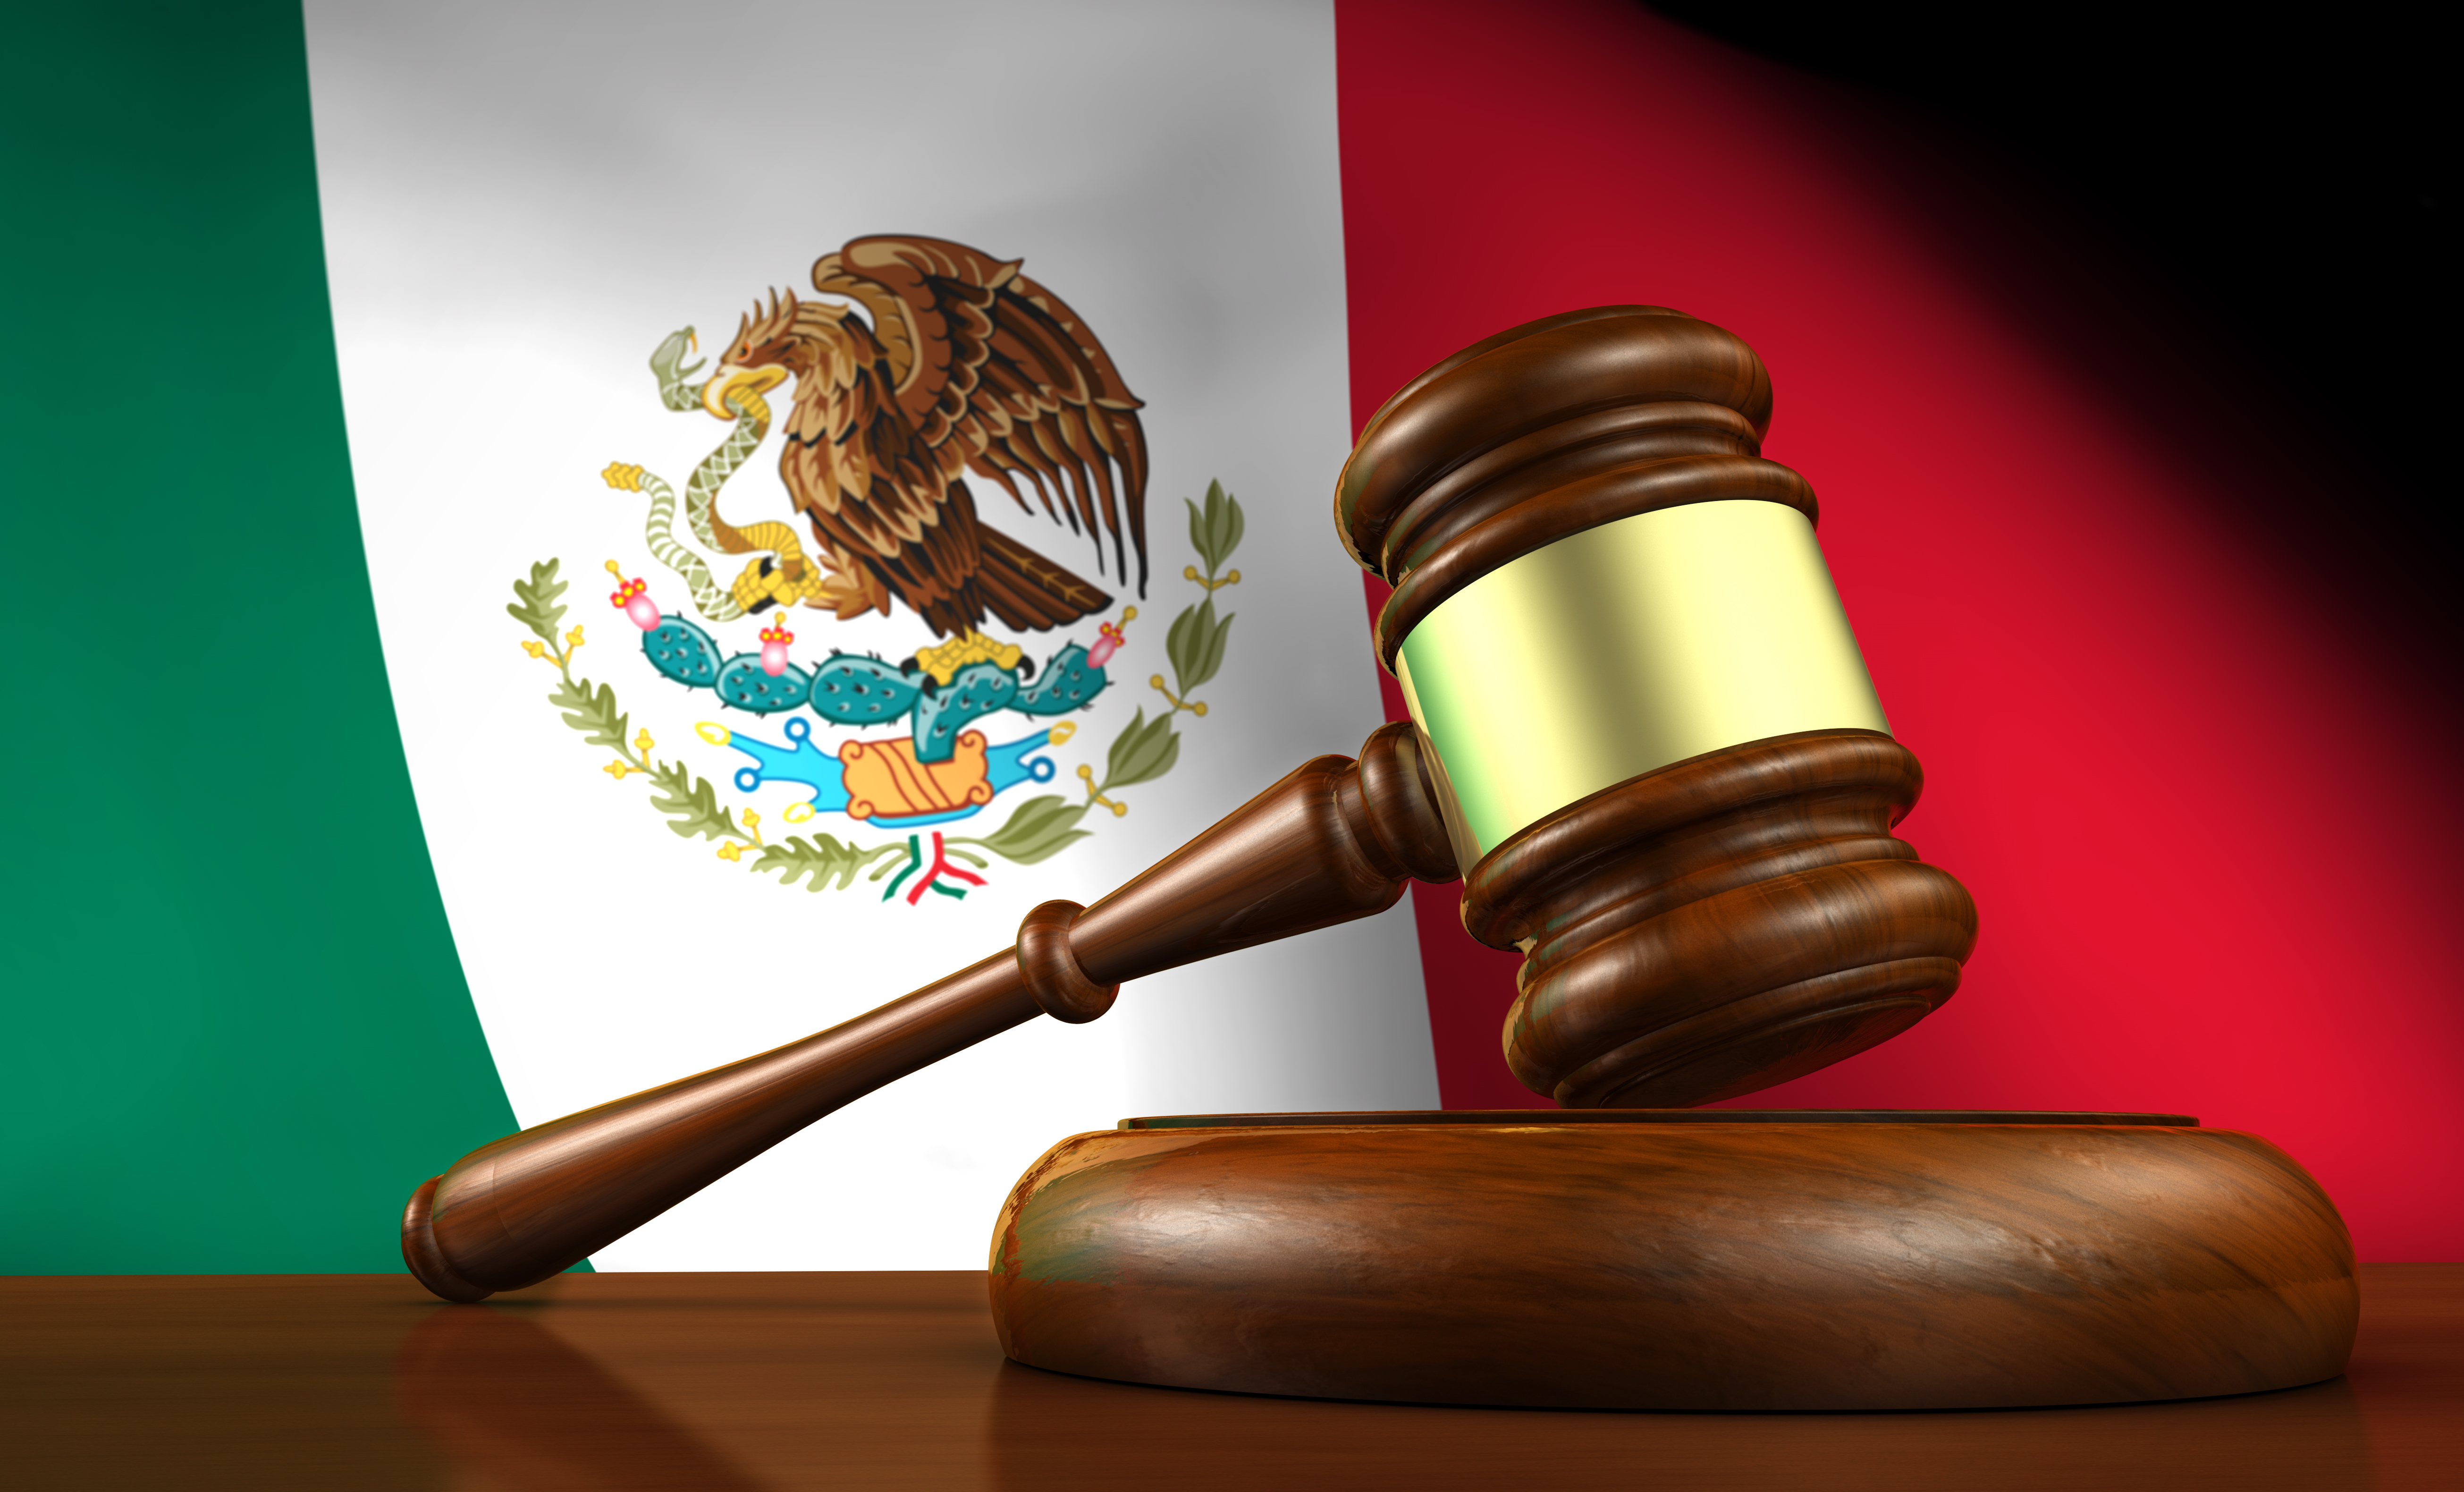 Image of a Mexican flag and a gavel. Use electronic signatures in Mexico to complete contracts and agreements easily and legally.